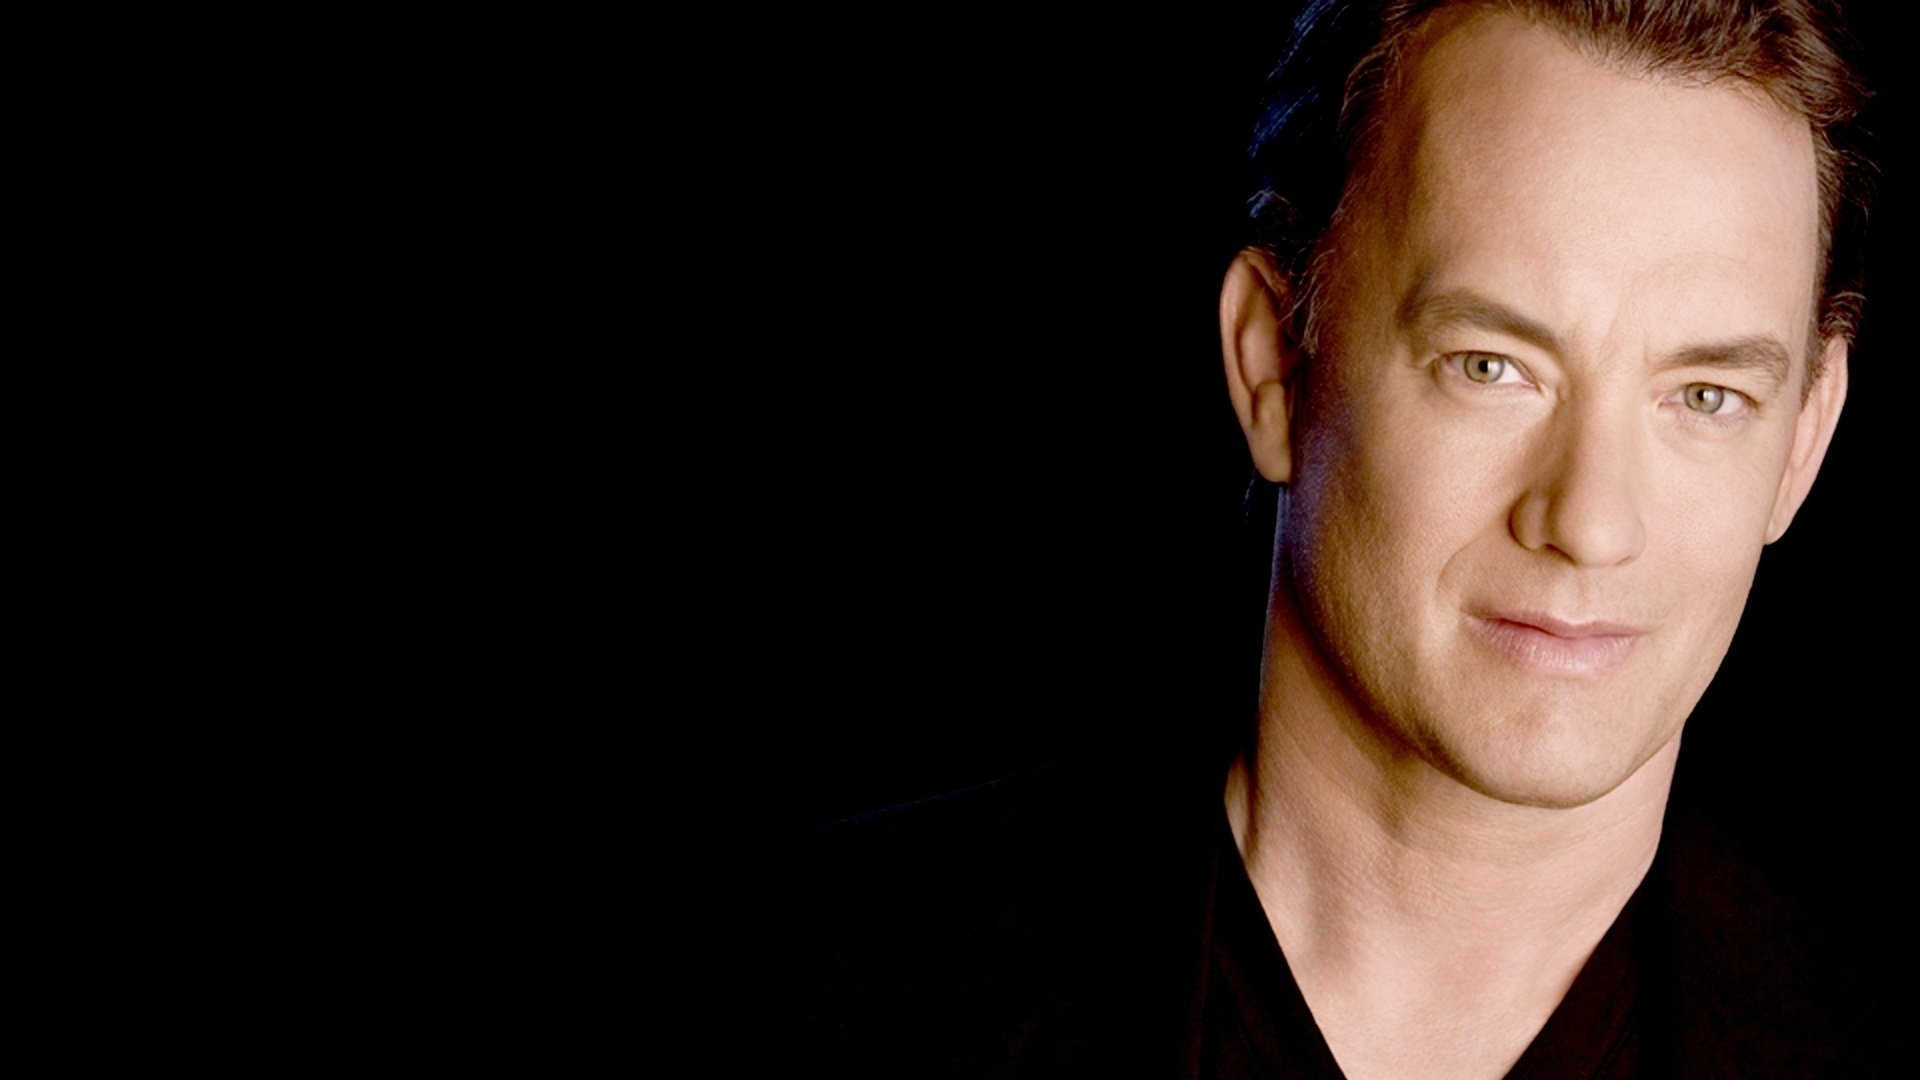 tom-hanks-actor-man-wallpaper-wallpapers